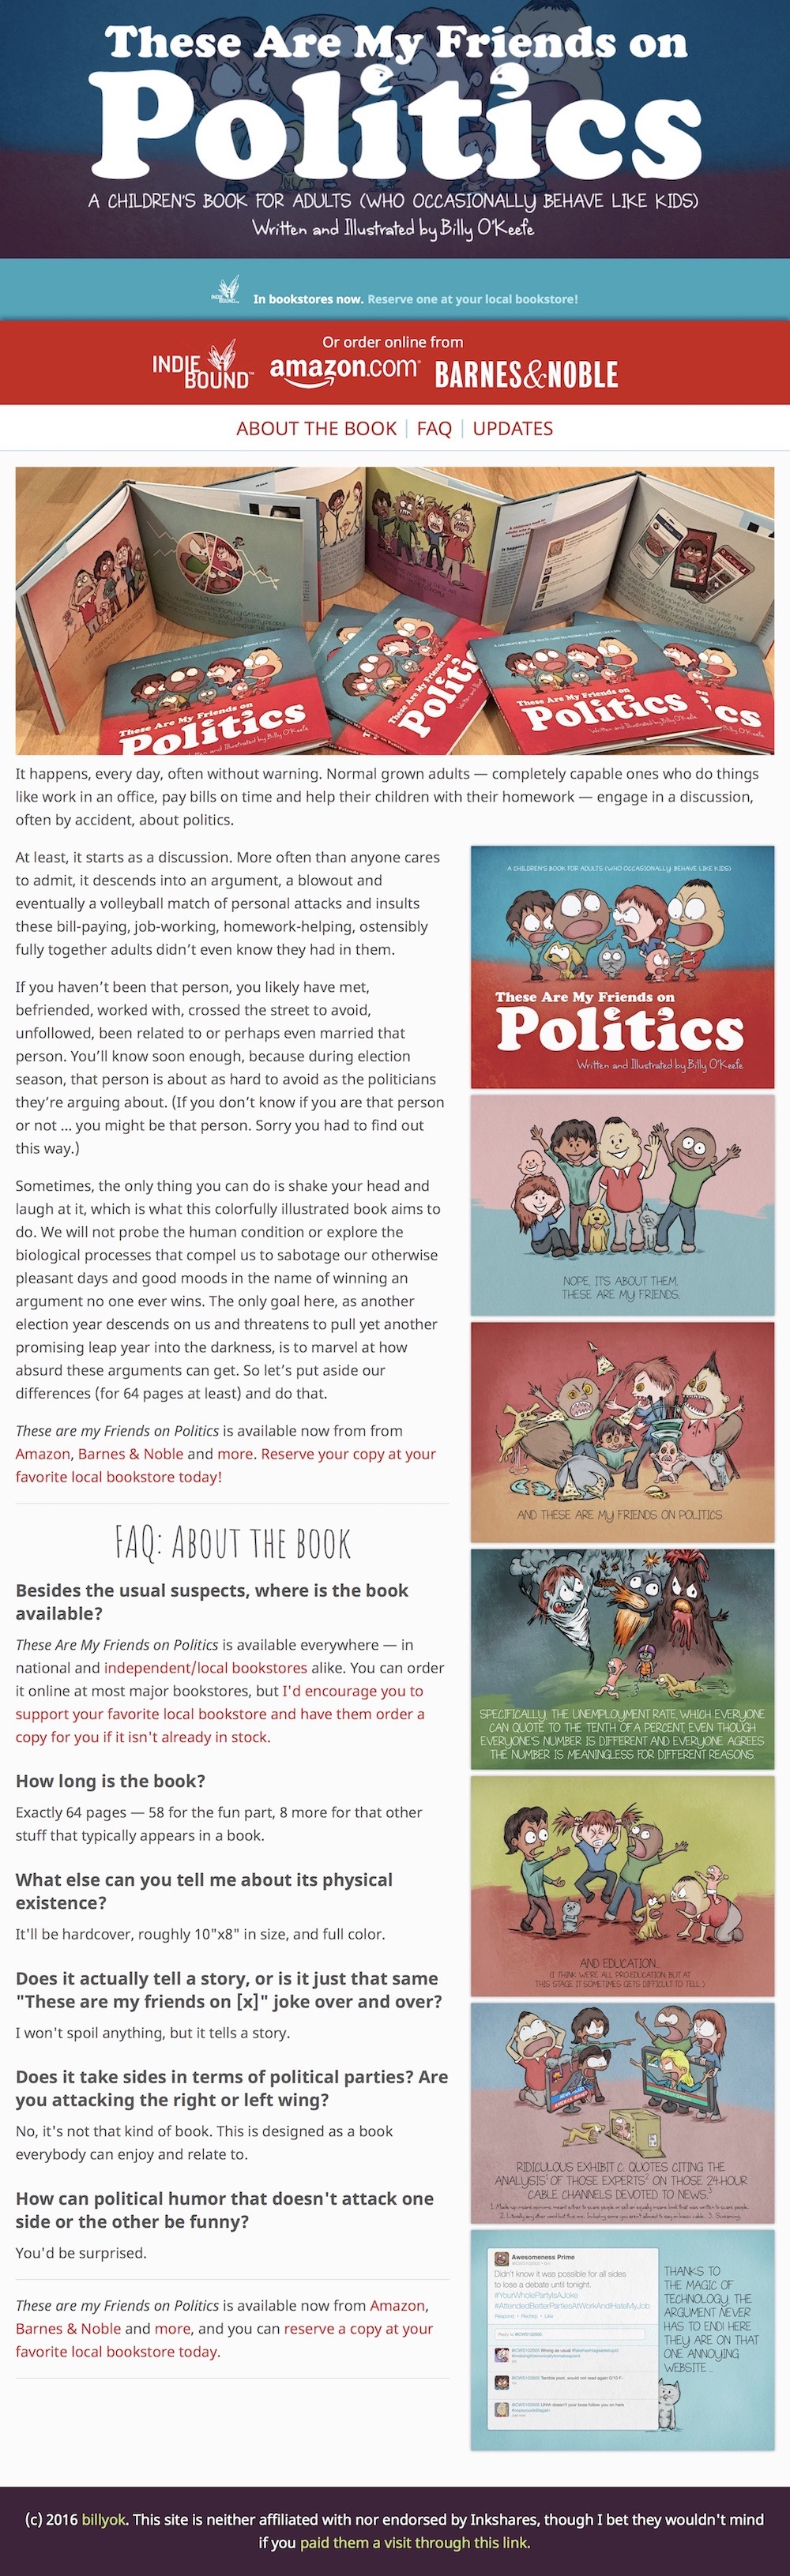 """These Are My Friends on Politics"""" Book Promotional Website 